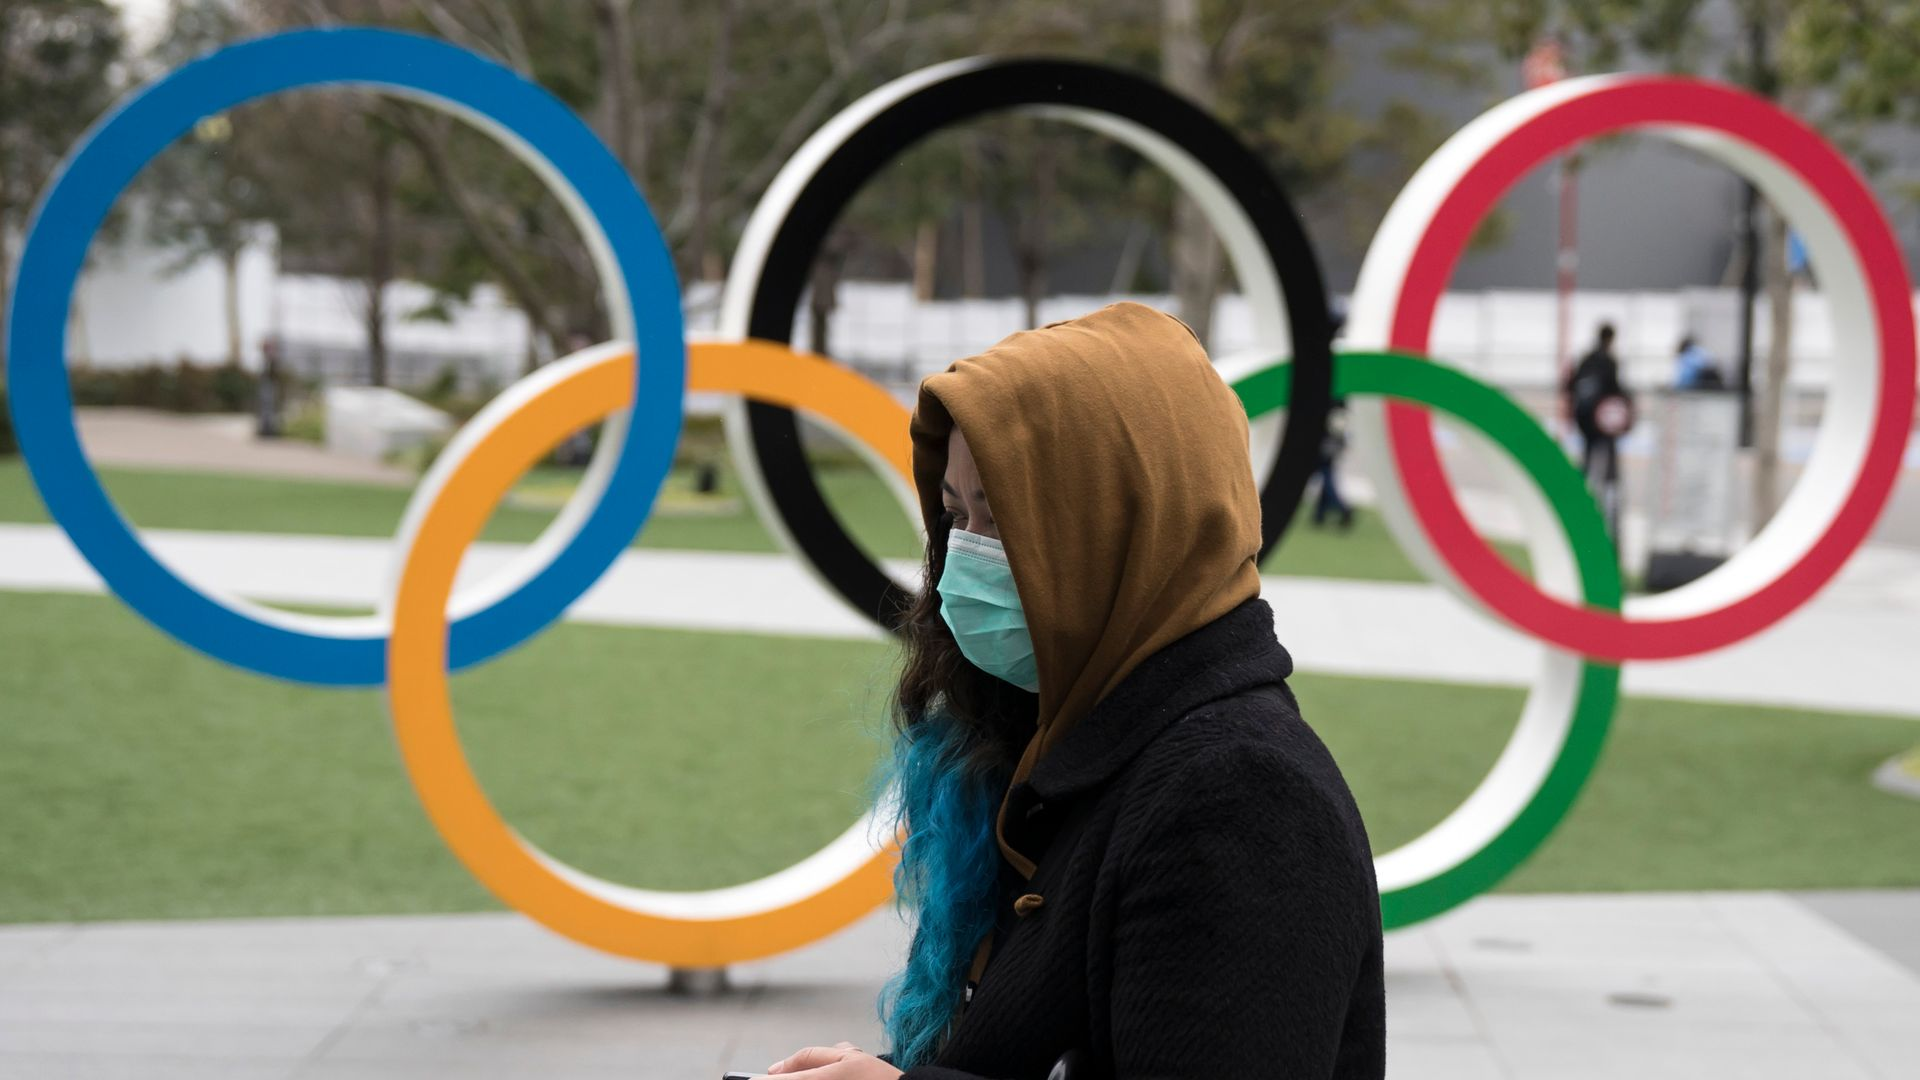 Tokyo Olympics organisers facing 'real problems'